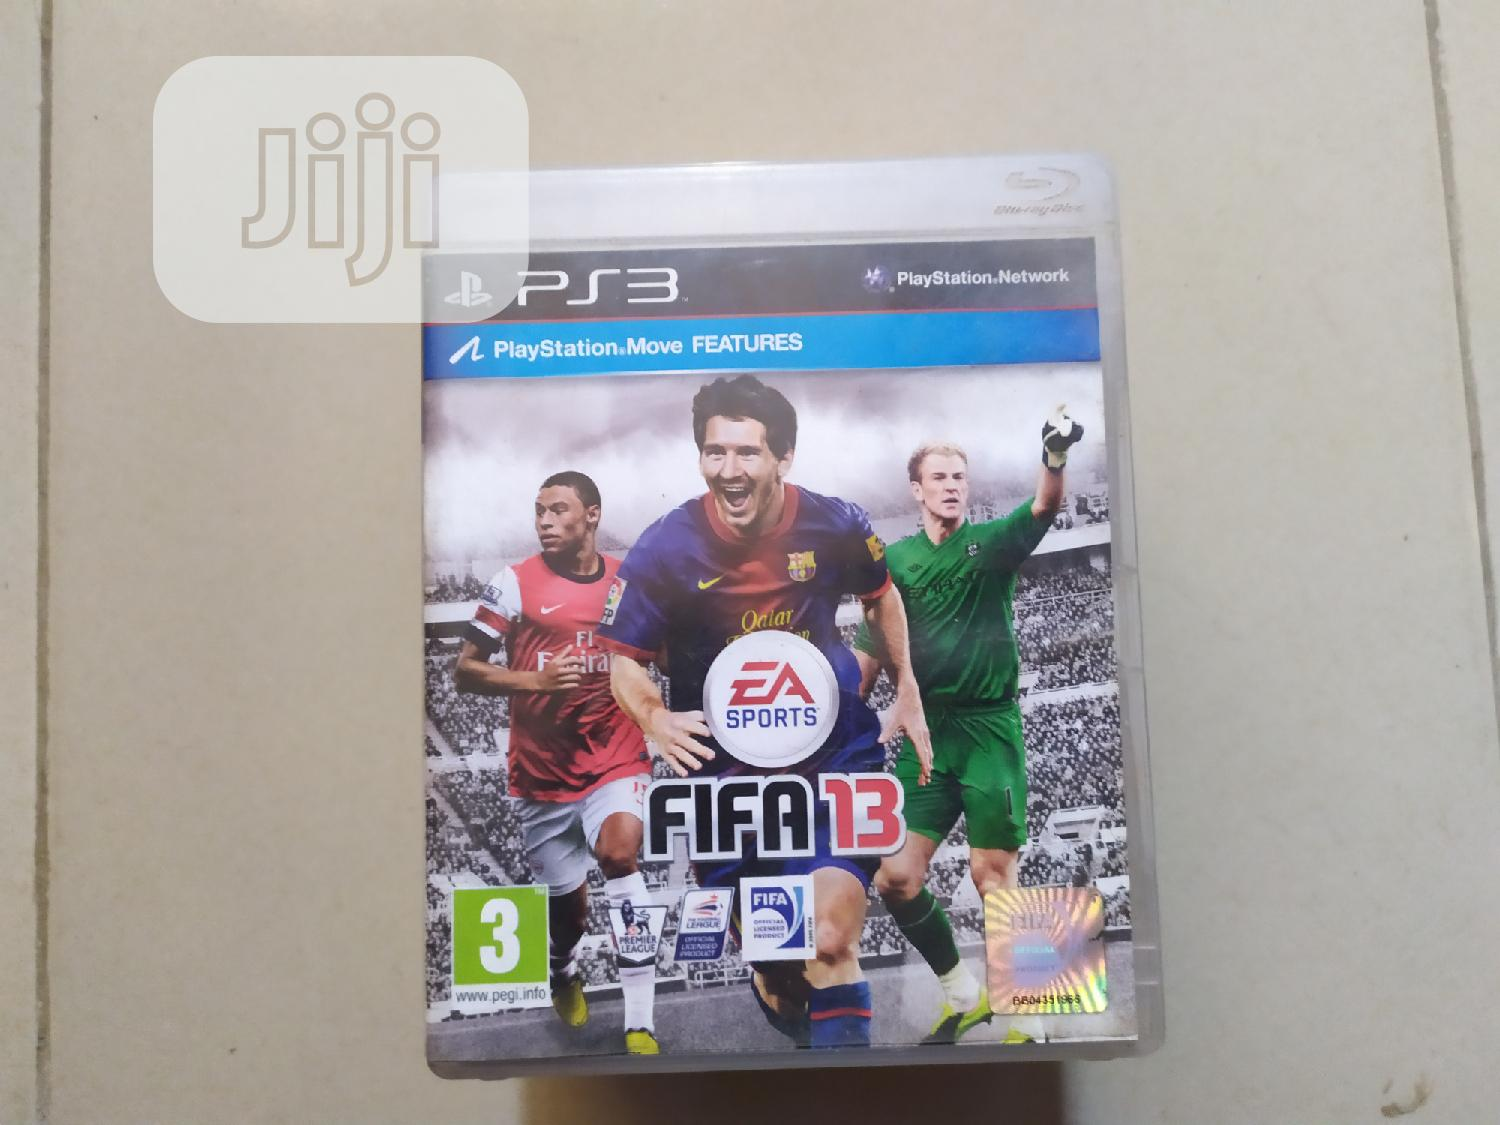 Playstation 3 FIFA 13 Ps3 Game Disc